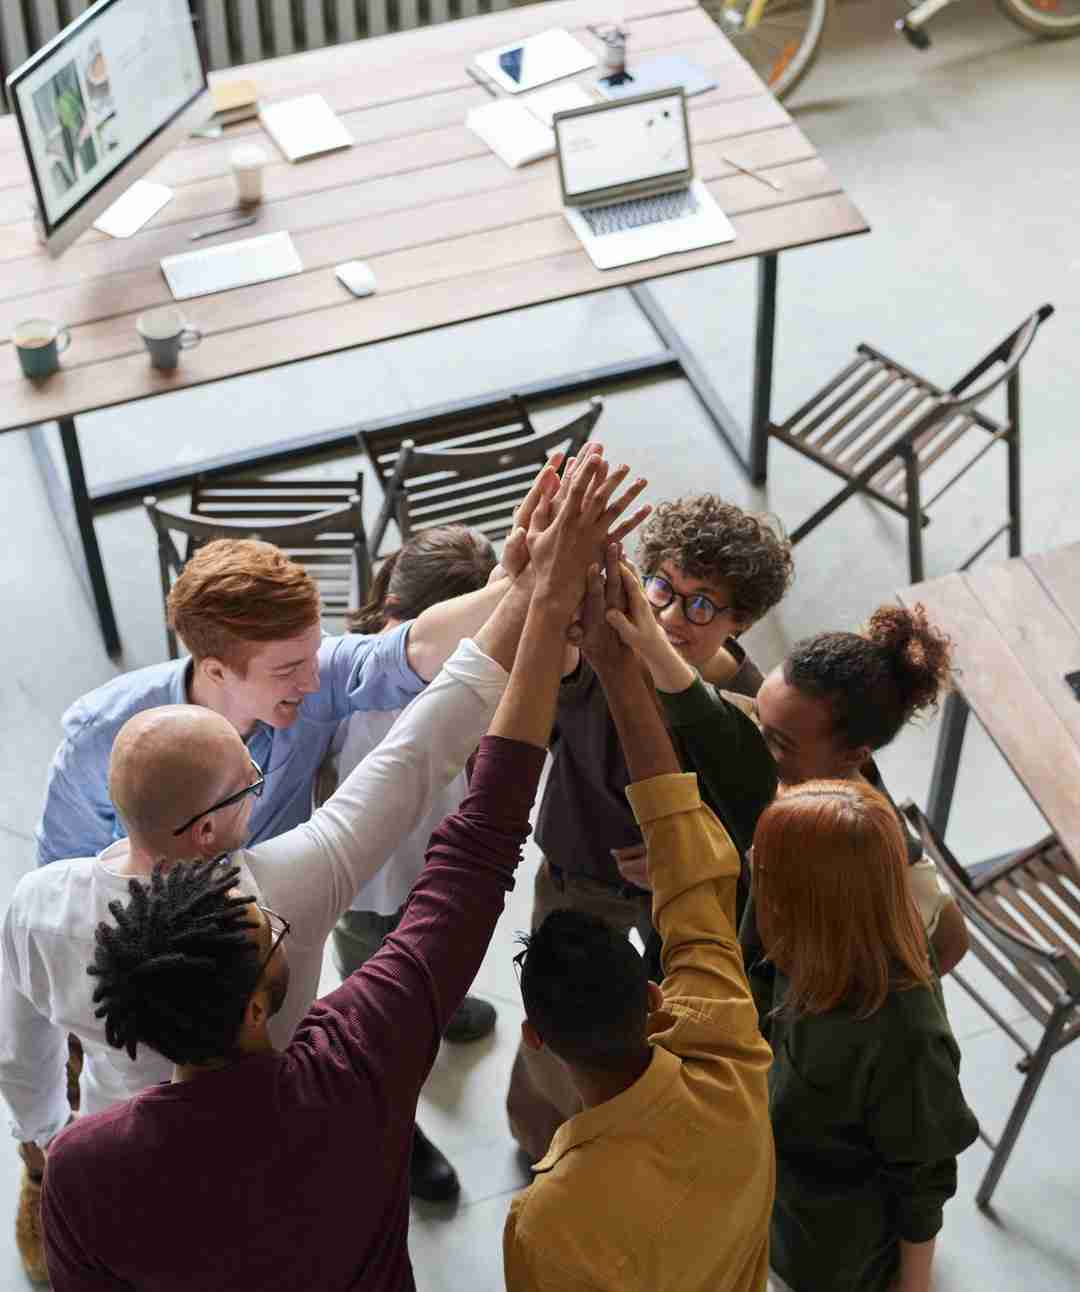 Importance of workplace wellness with teams